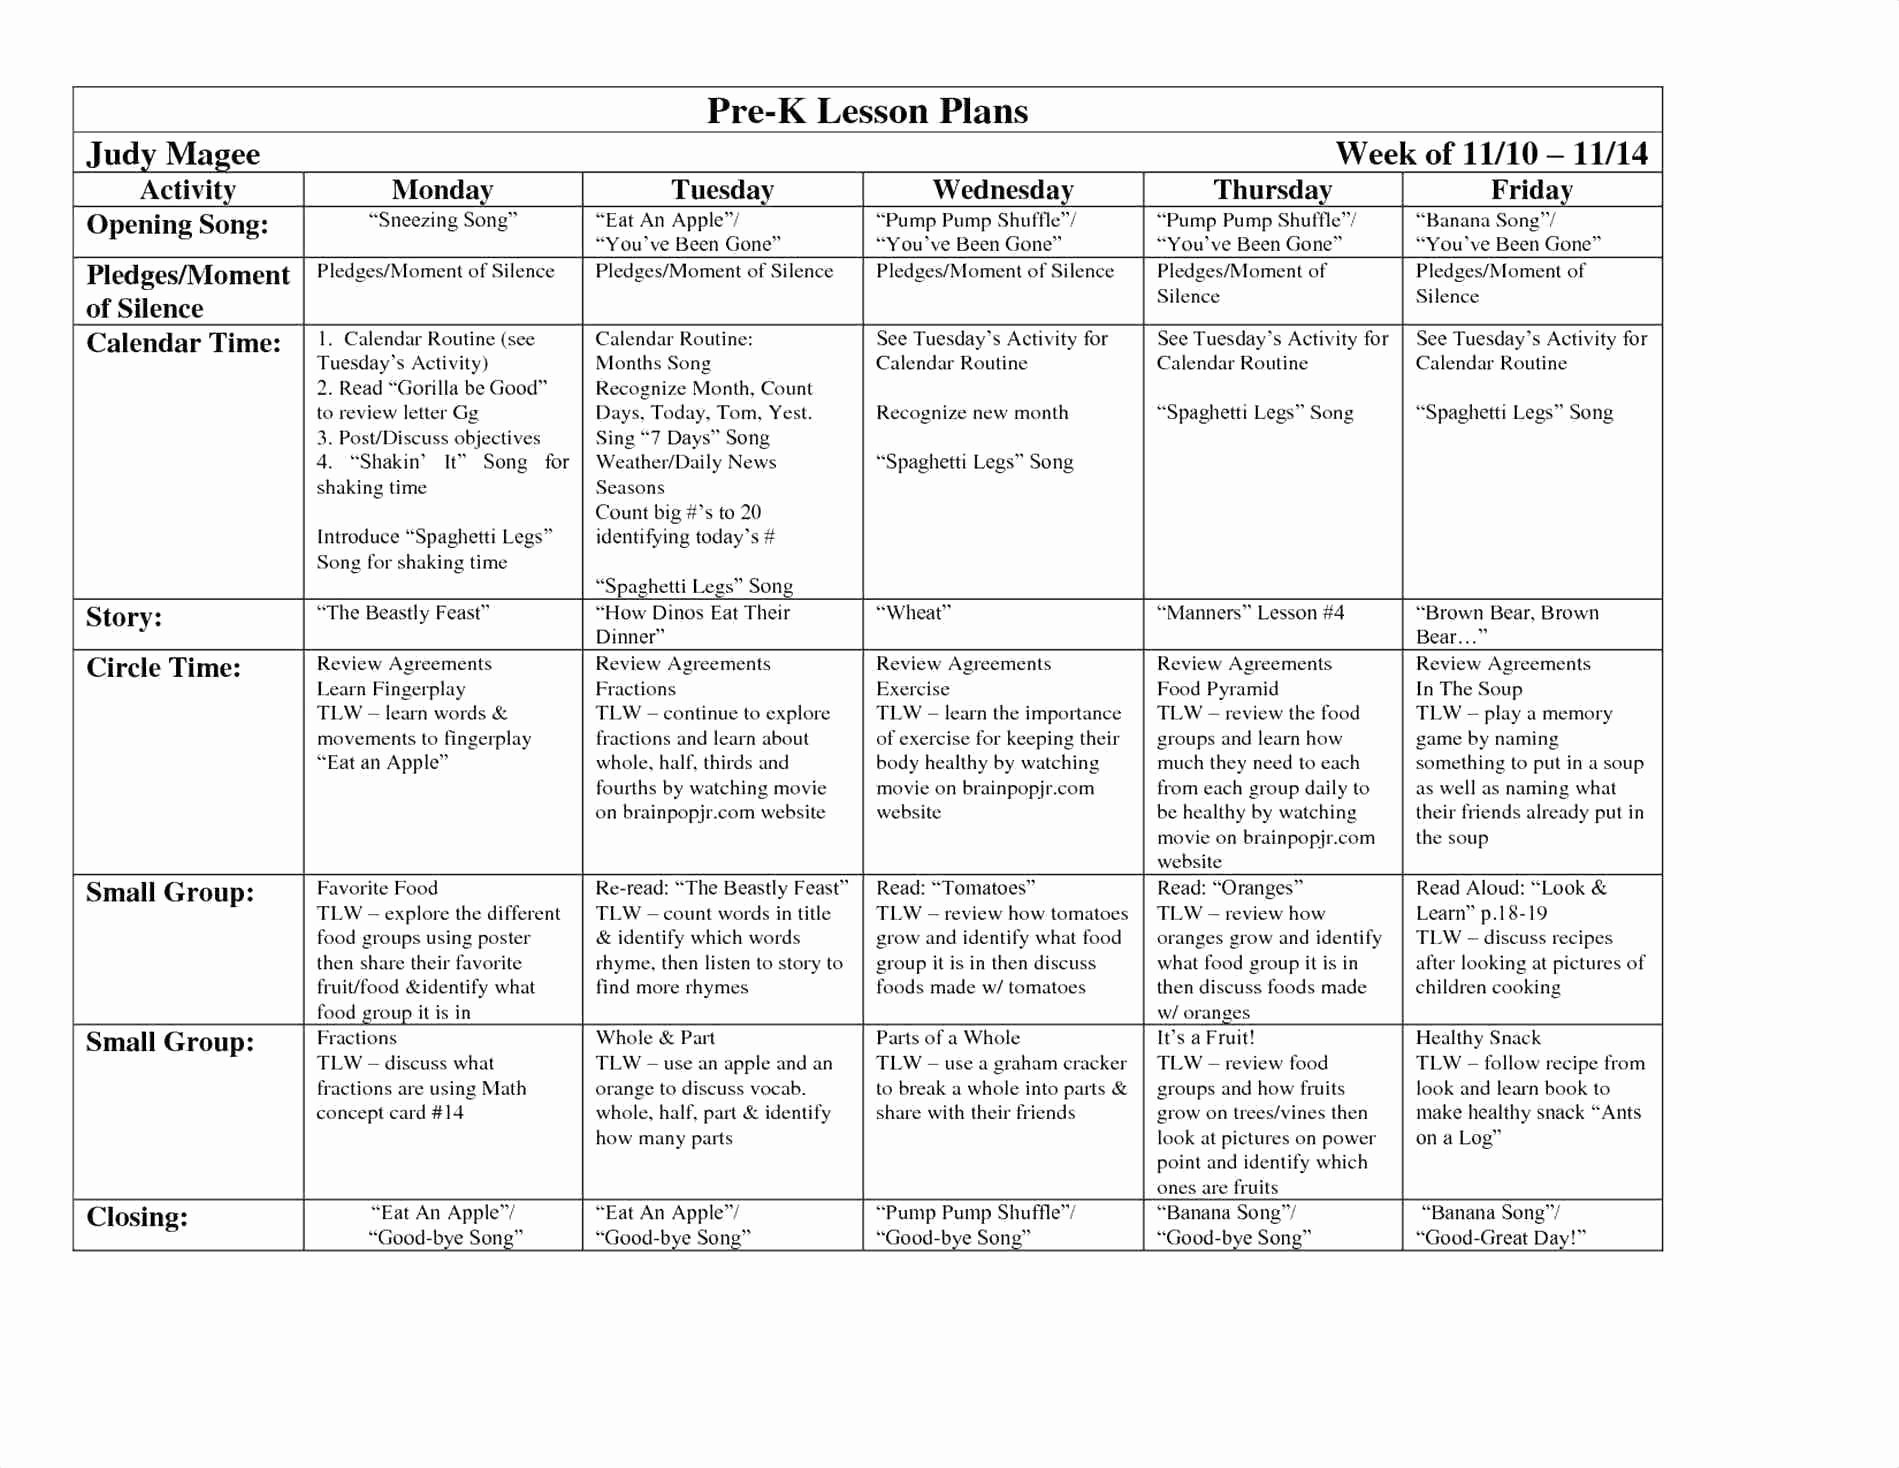 Pre K Weekly Lesson Plan Template